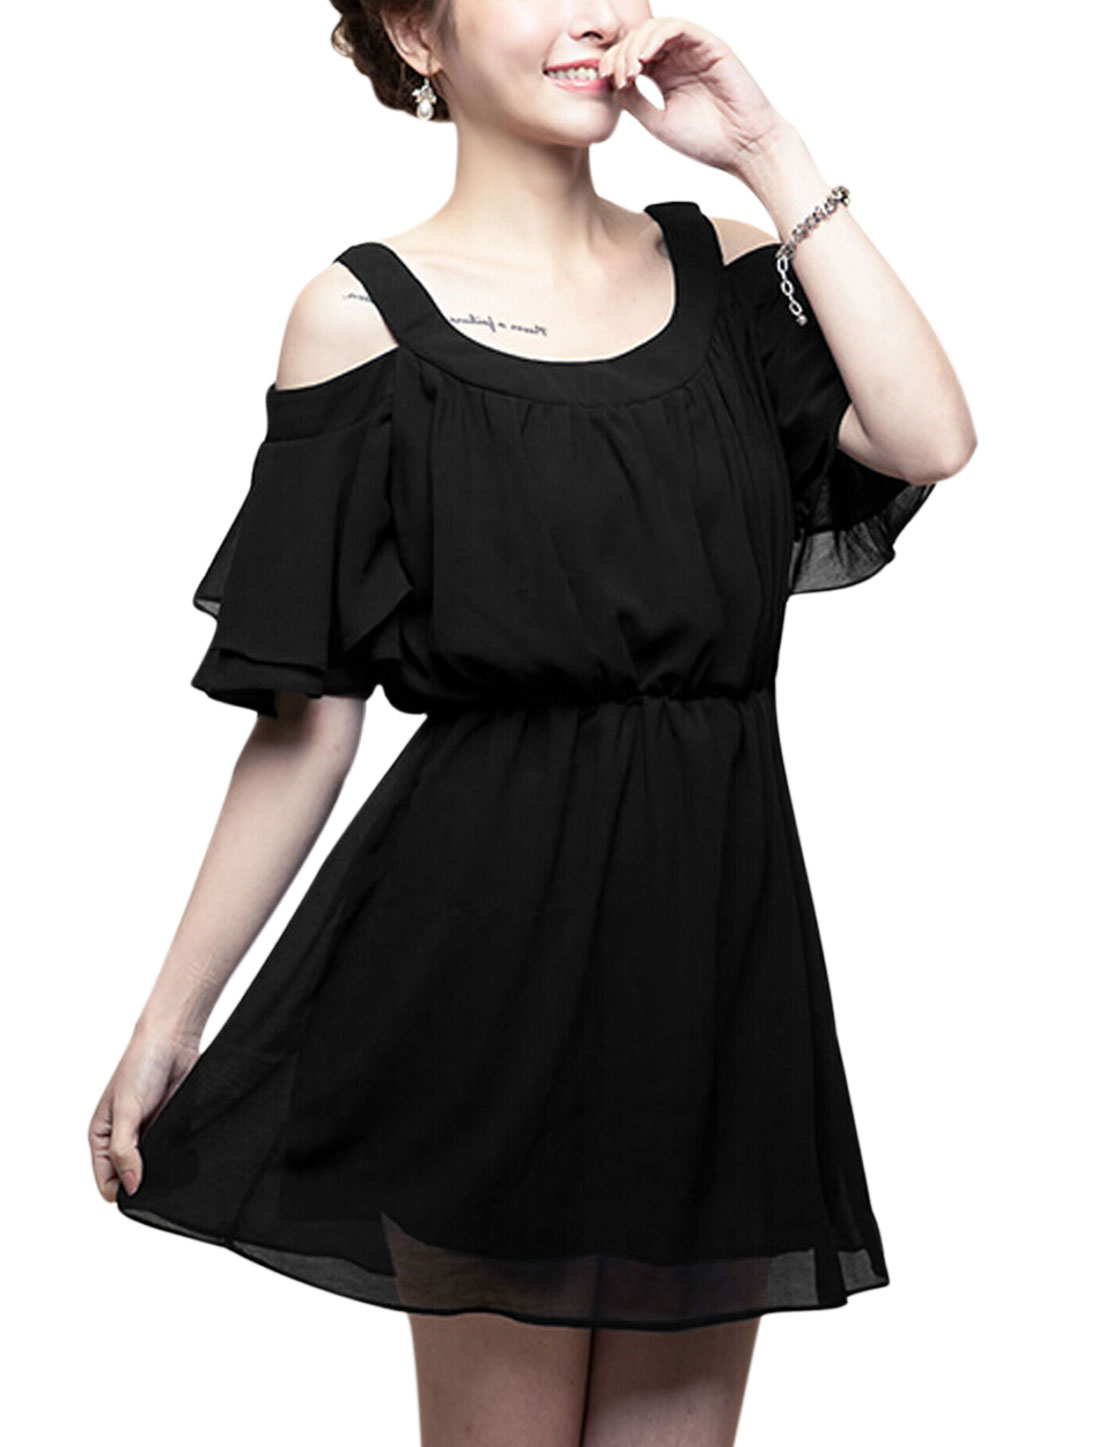 Lady Layered Flouncing Sleeve Cut Out Shoulder Fully Lined Chiffon Dress Black S